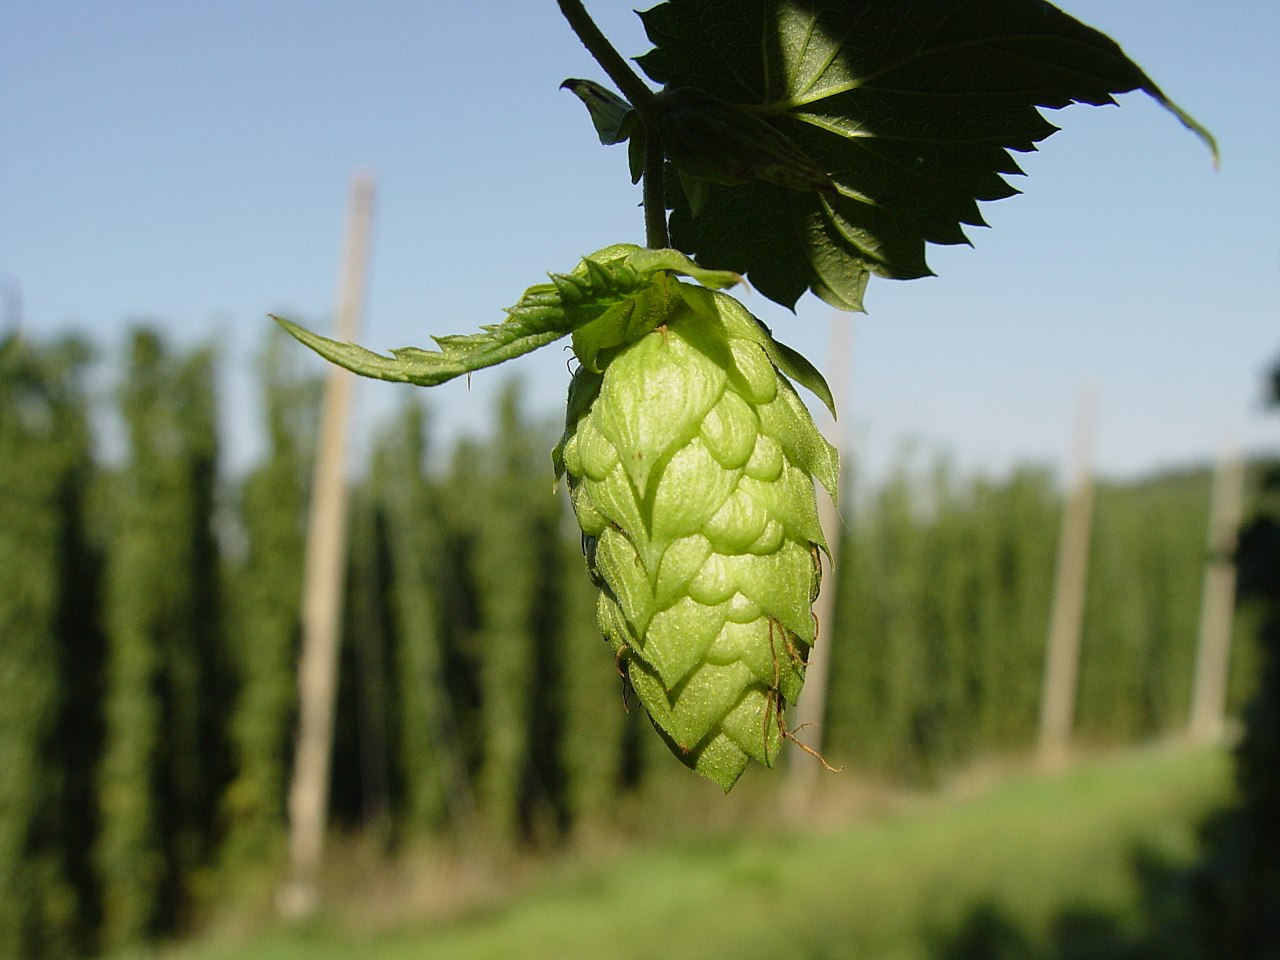 Hello, lady hop. Let's get to brewing. - Taken by LuckyStarr, Wikicommons.